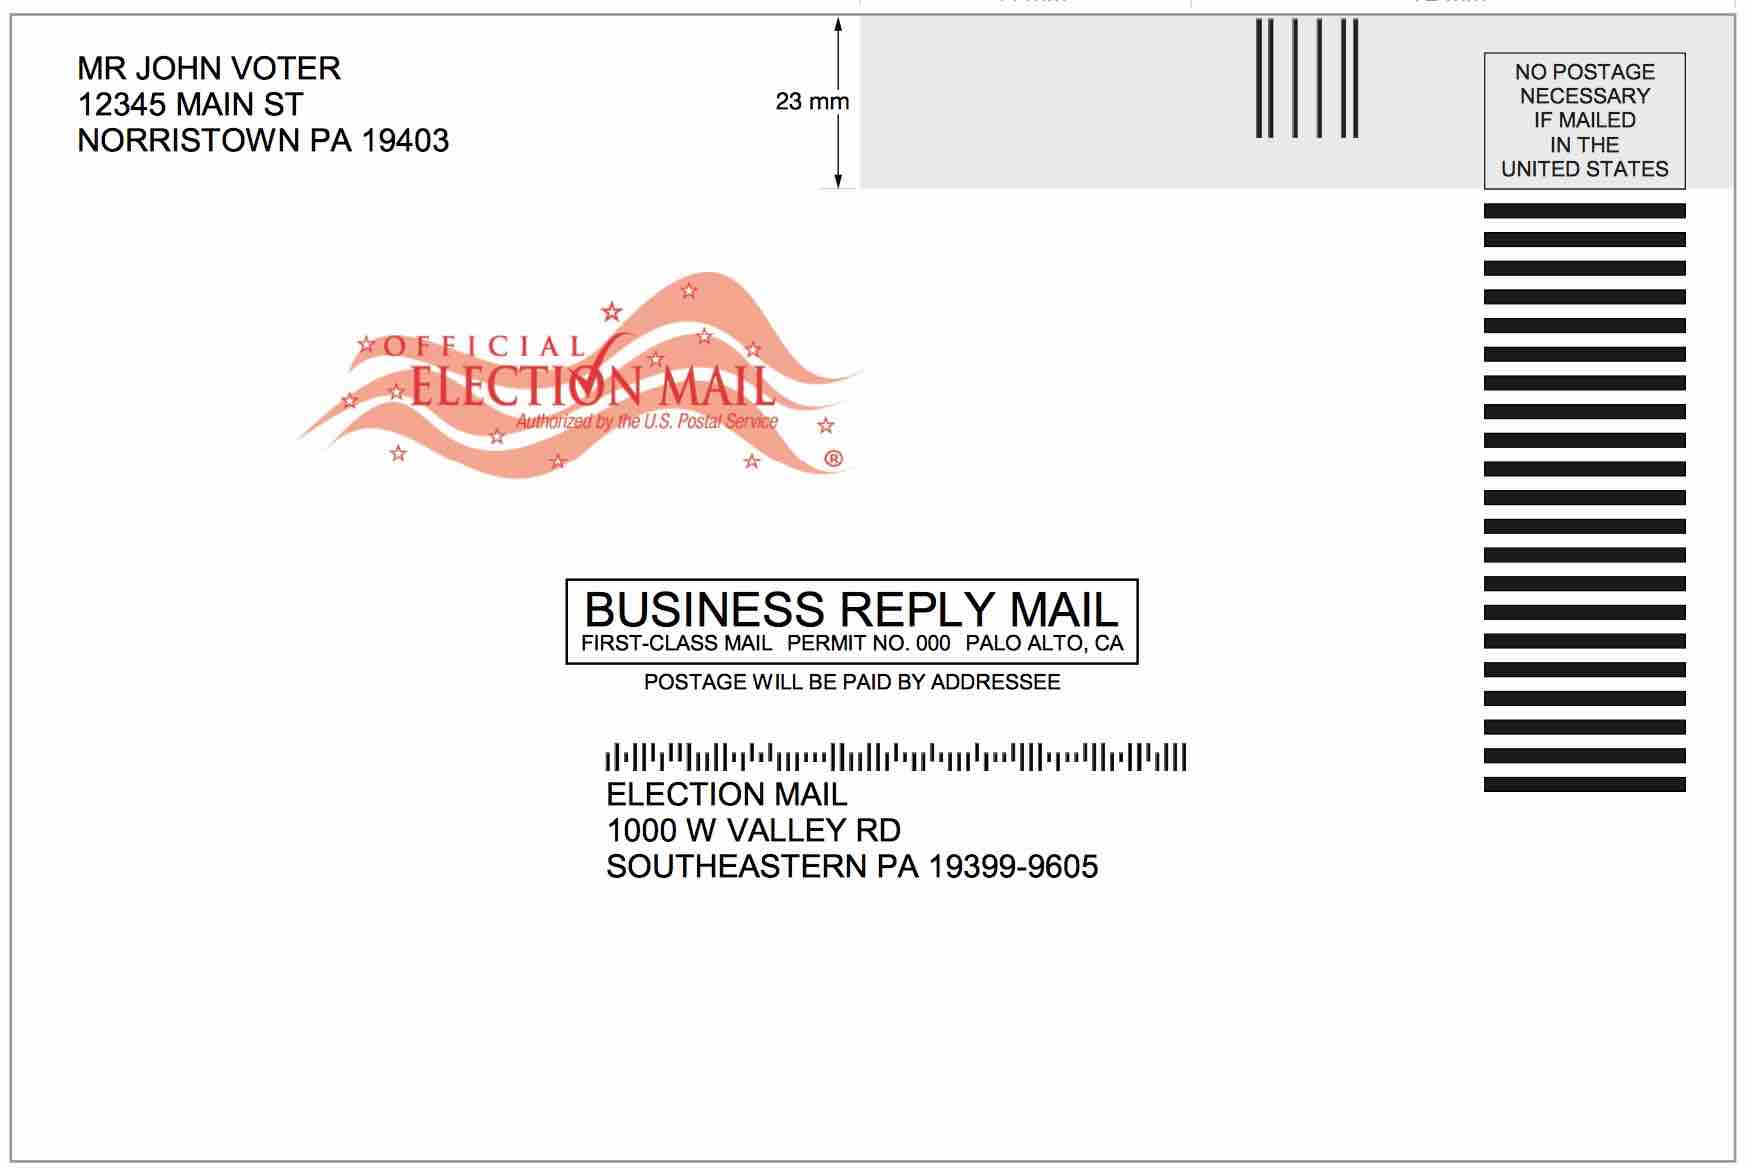 USPS software issues lead to ballot problems in California